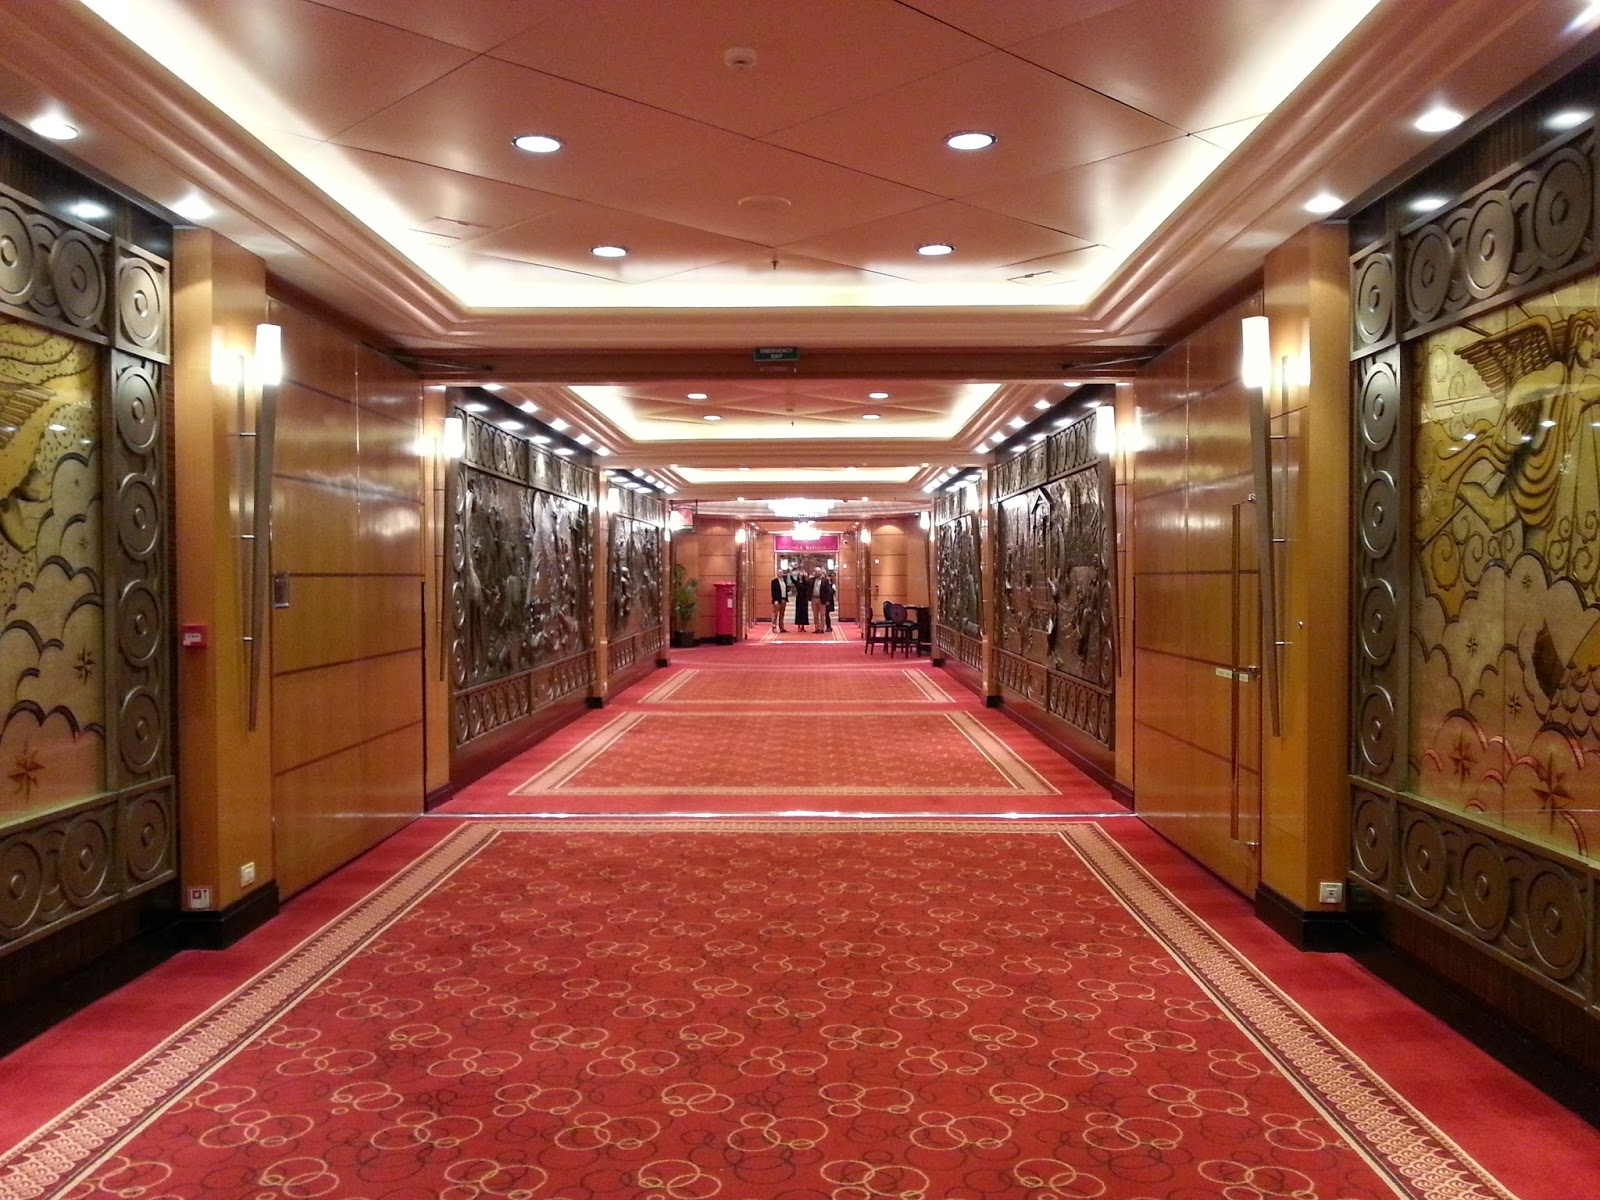 Queen Mary 2 (QM2) - Deck 2 corridor